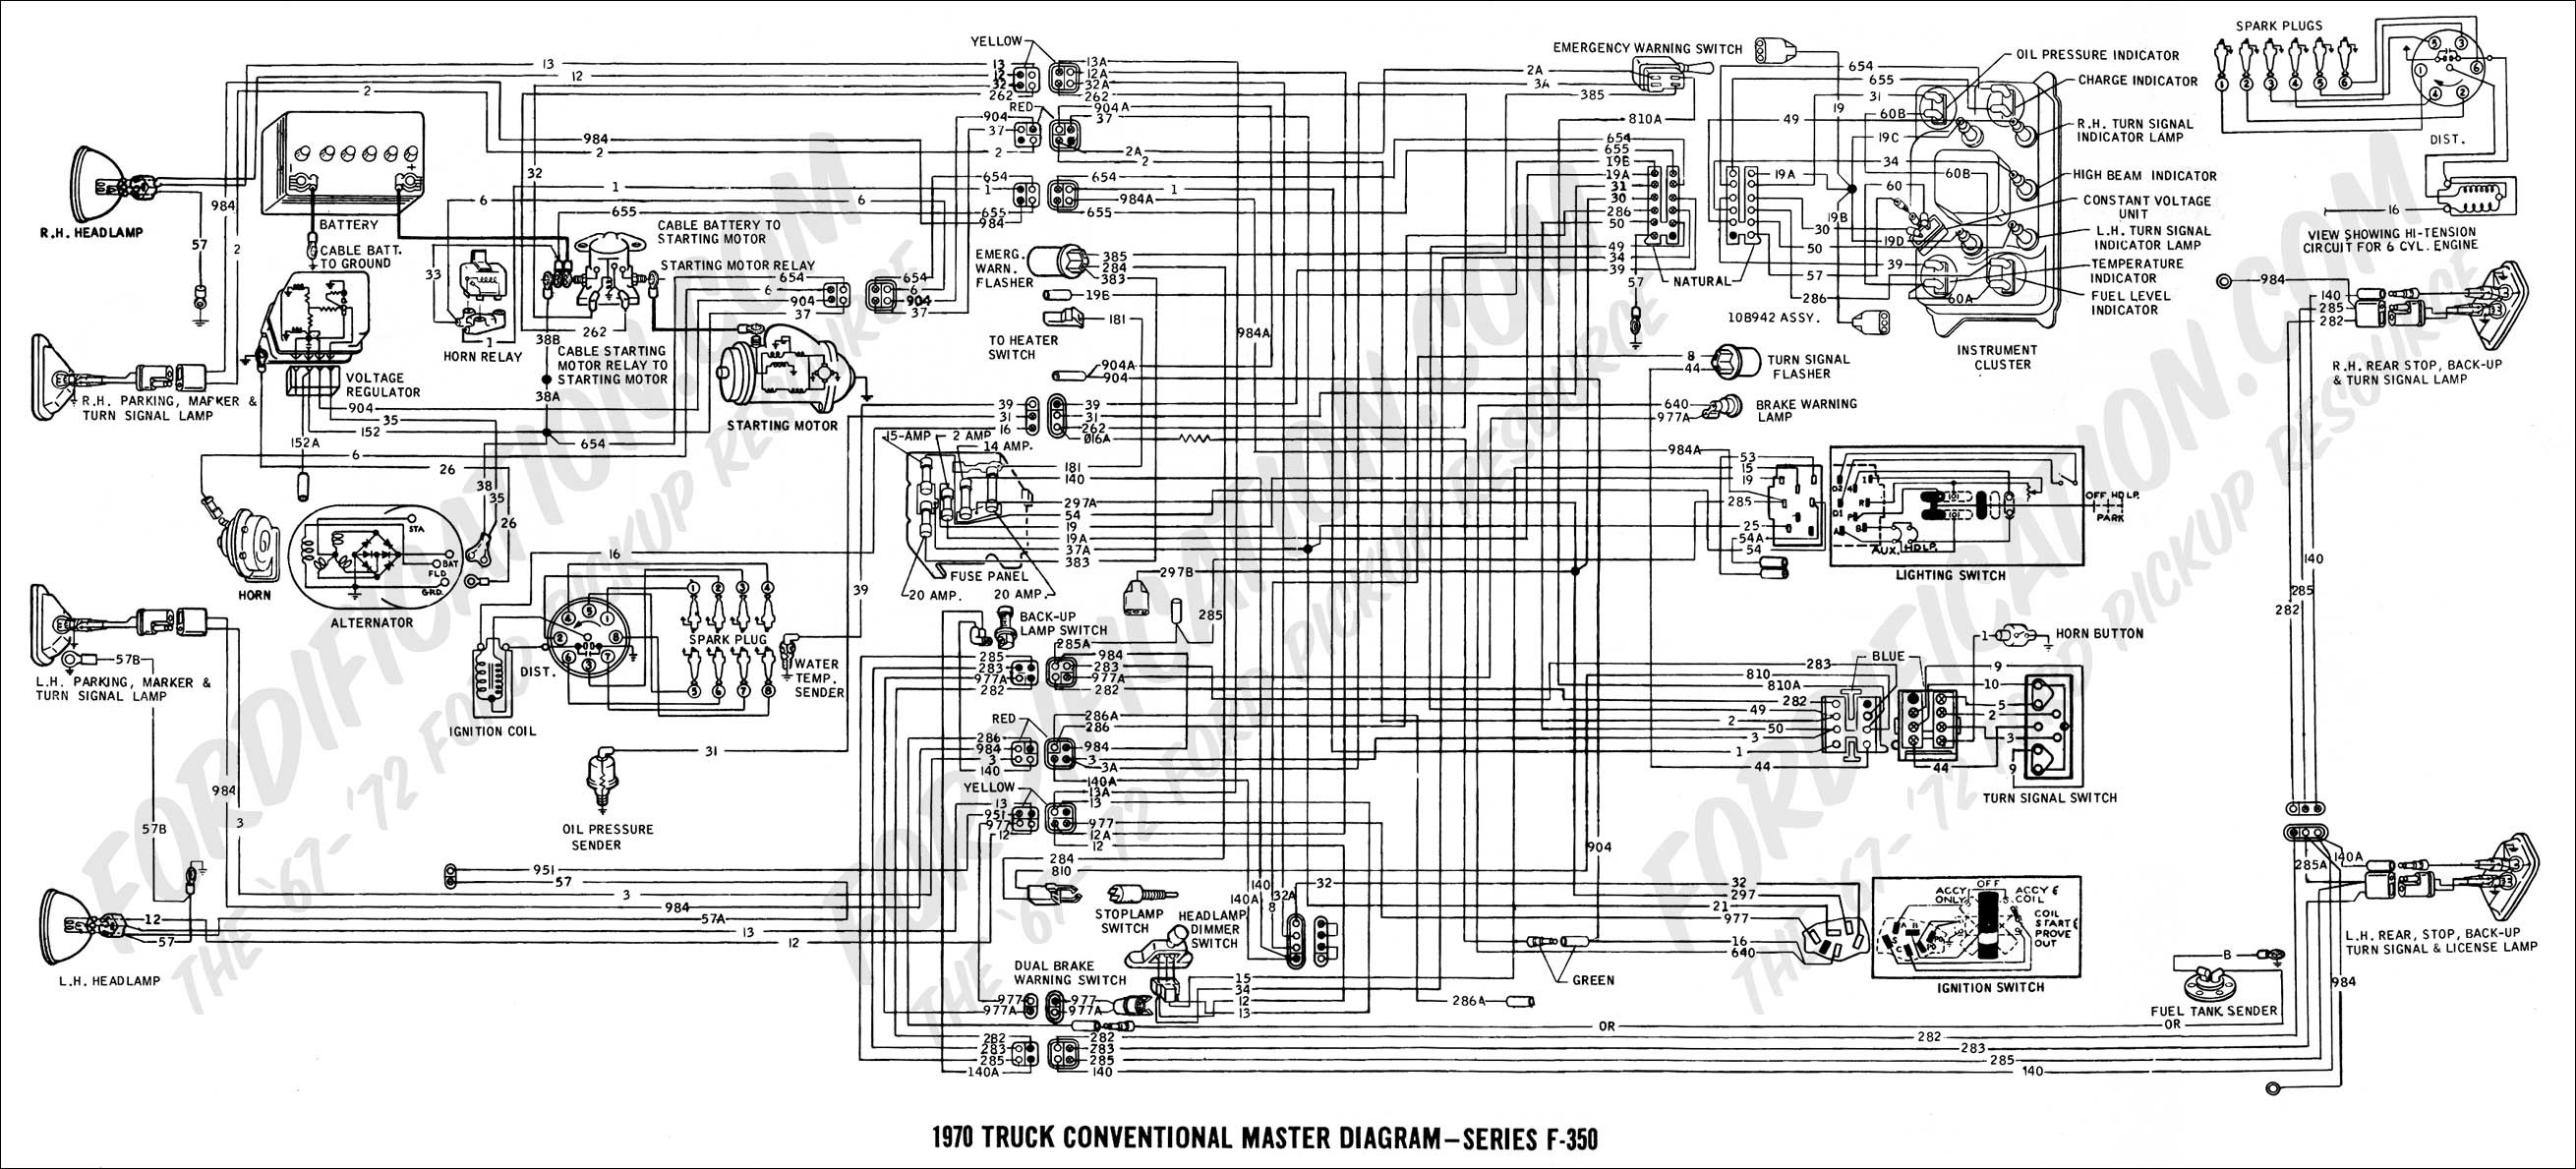 1998 ford Mustang Wiring Diagram to 2007 ford Mustang Wiring Diagram Wiring Diagram Of 1998 ford Mustang Wiring Diagram